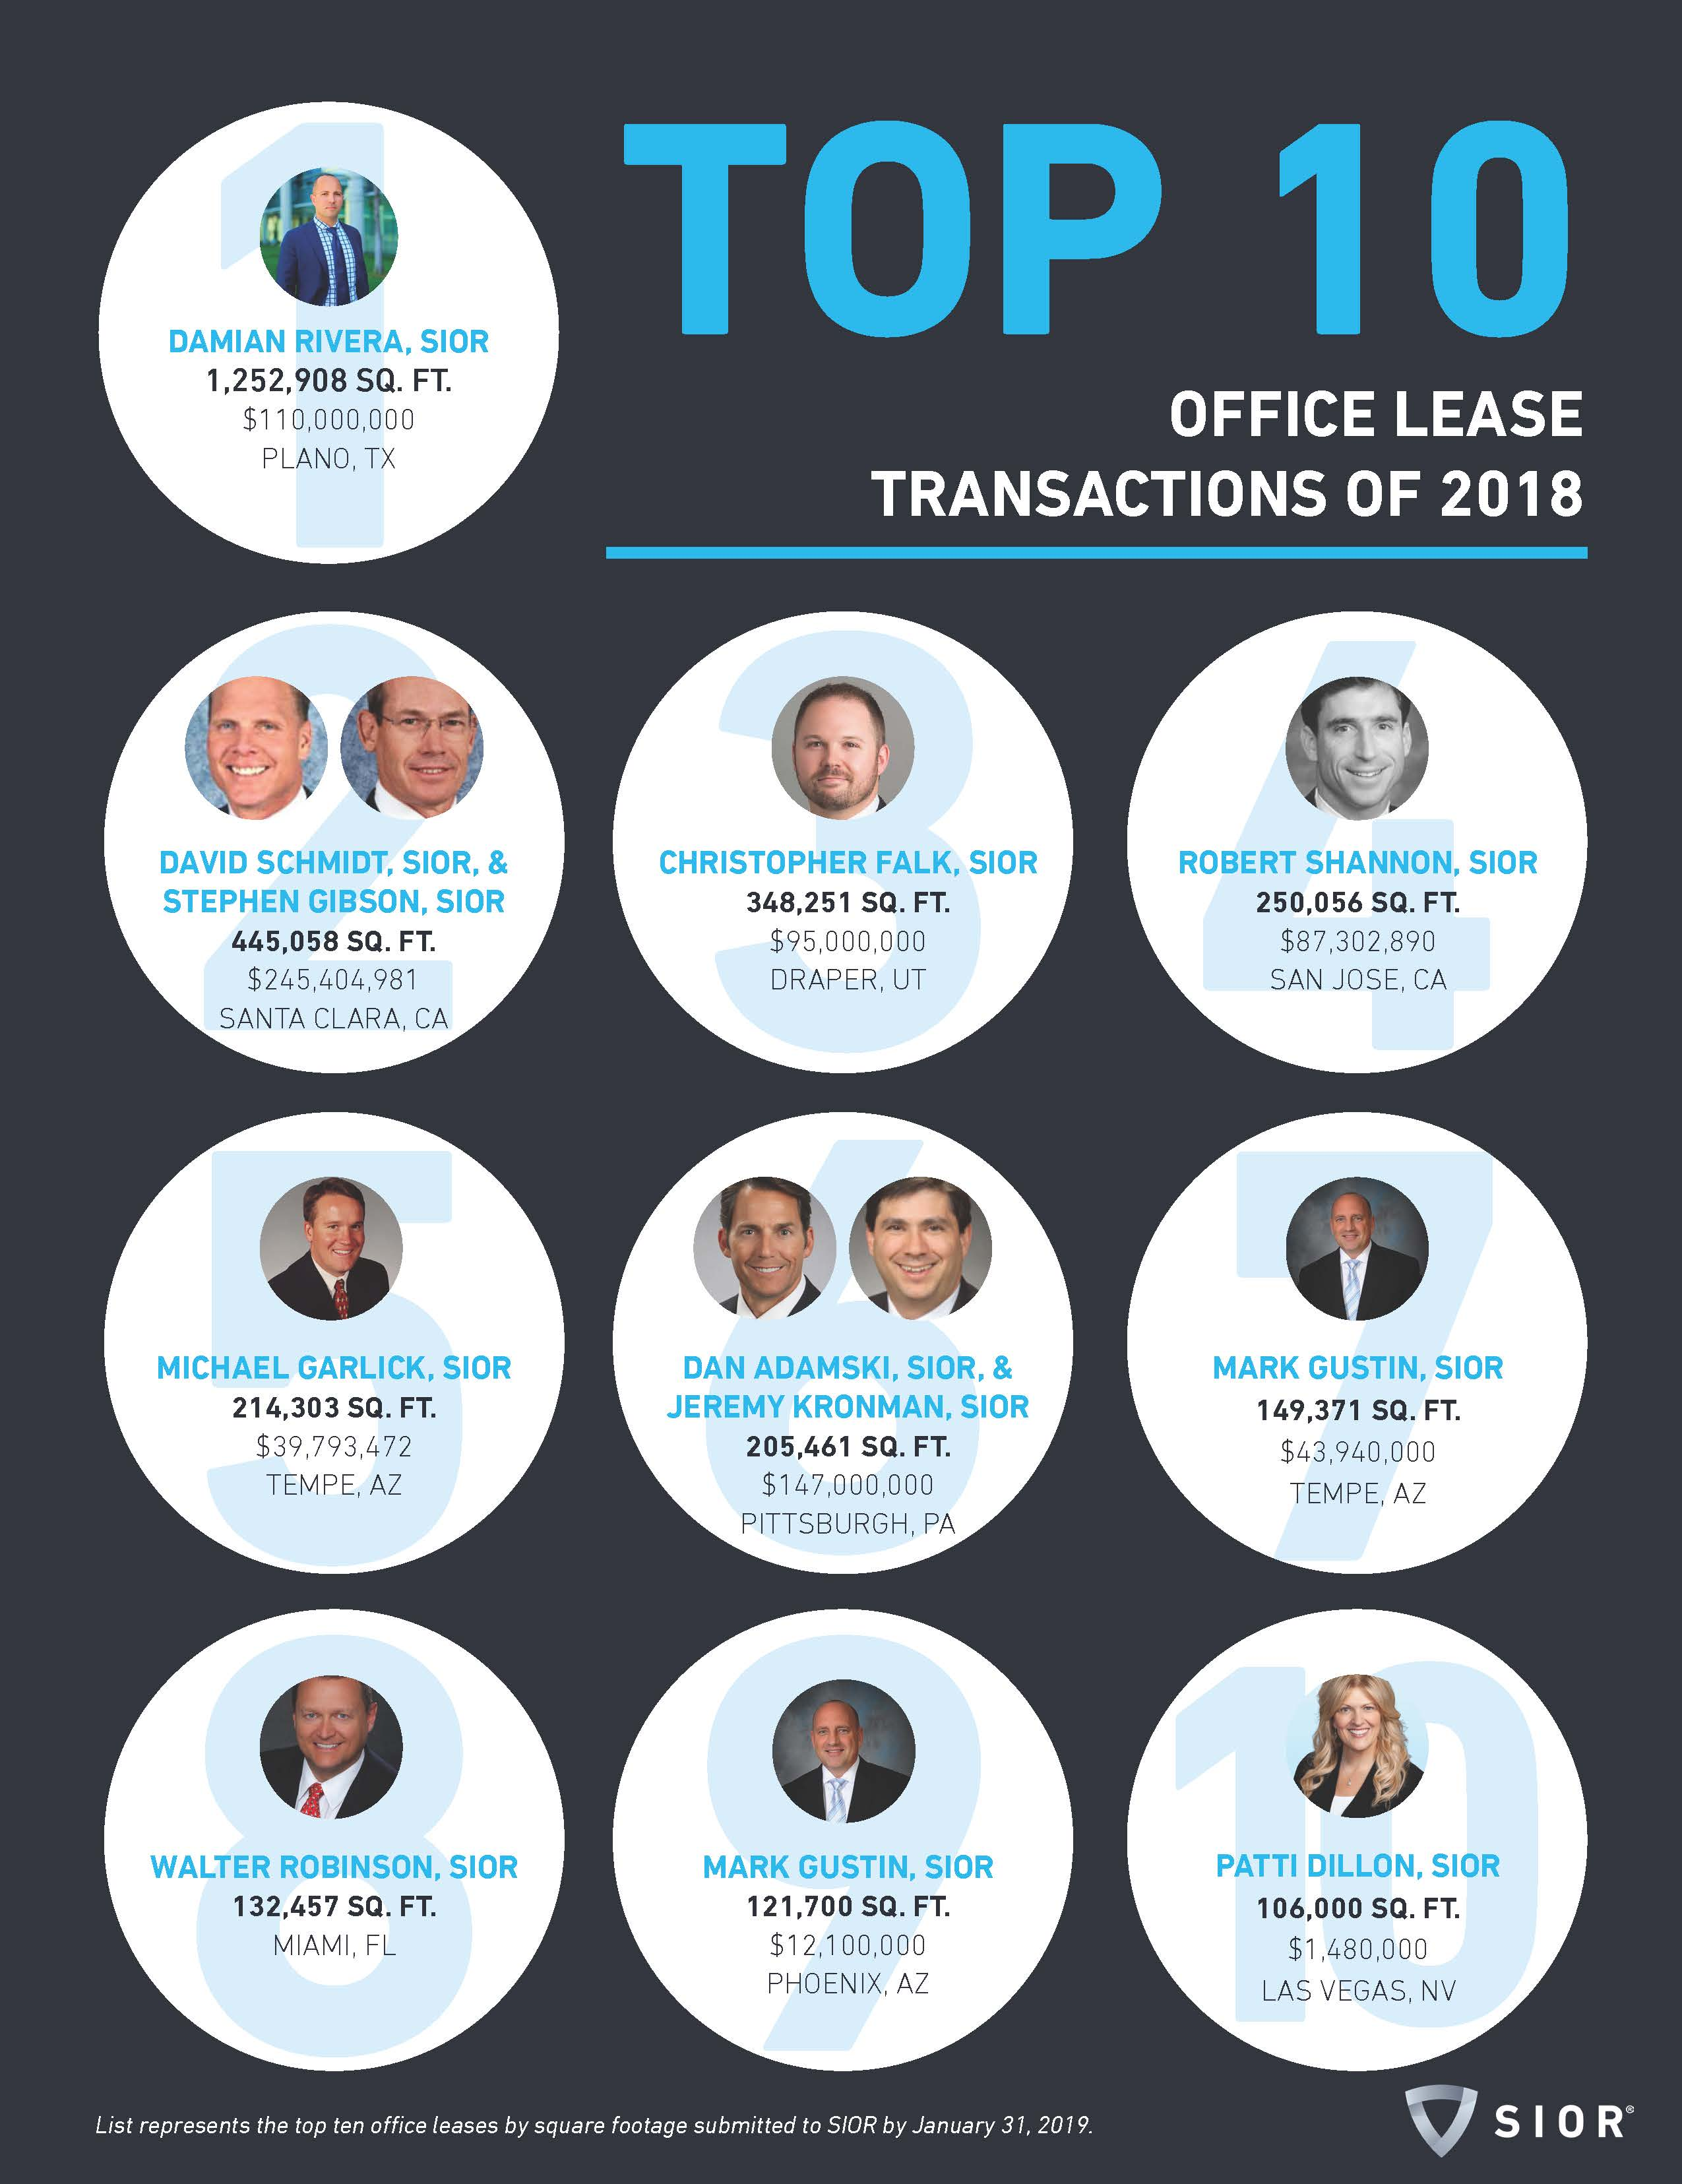 Top 10 Office Leases of 2018